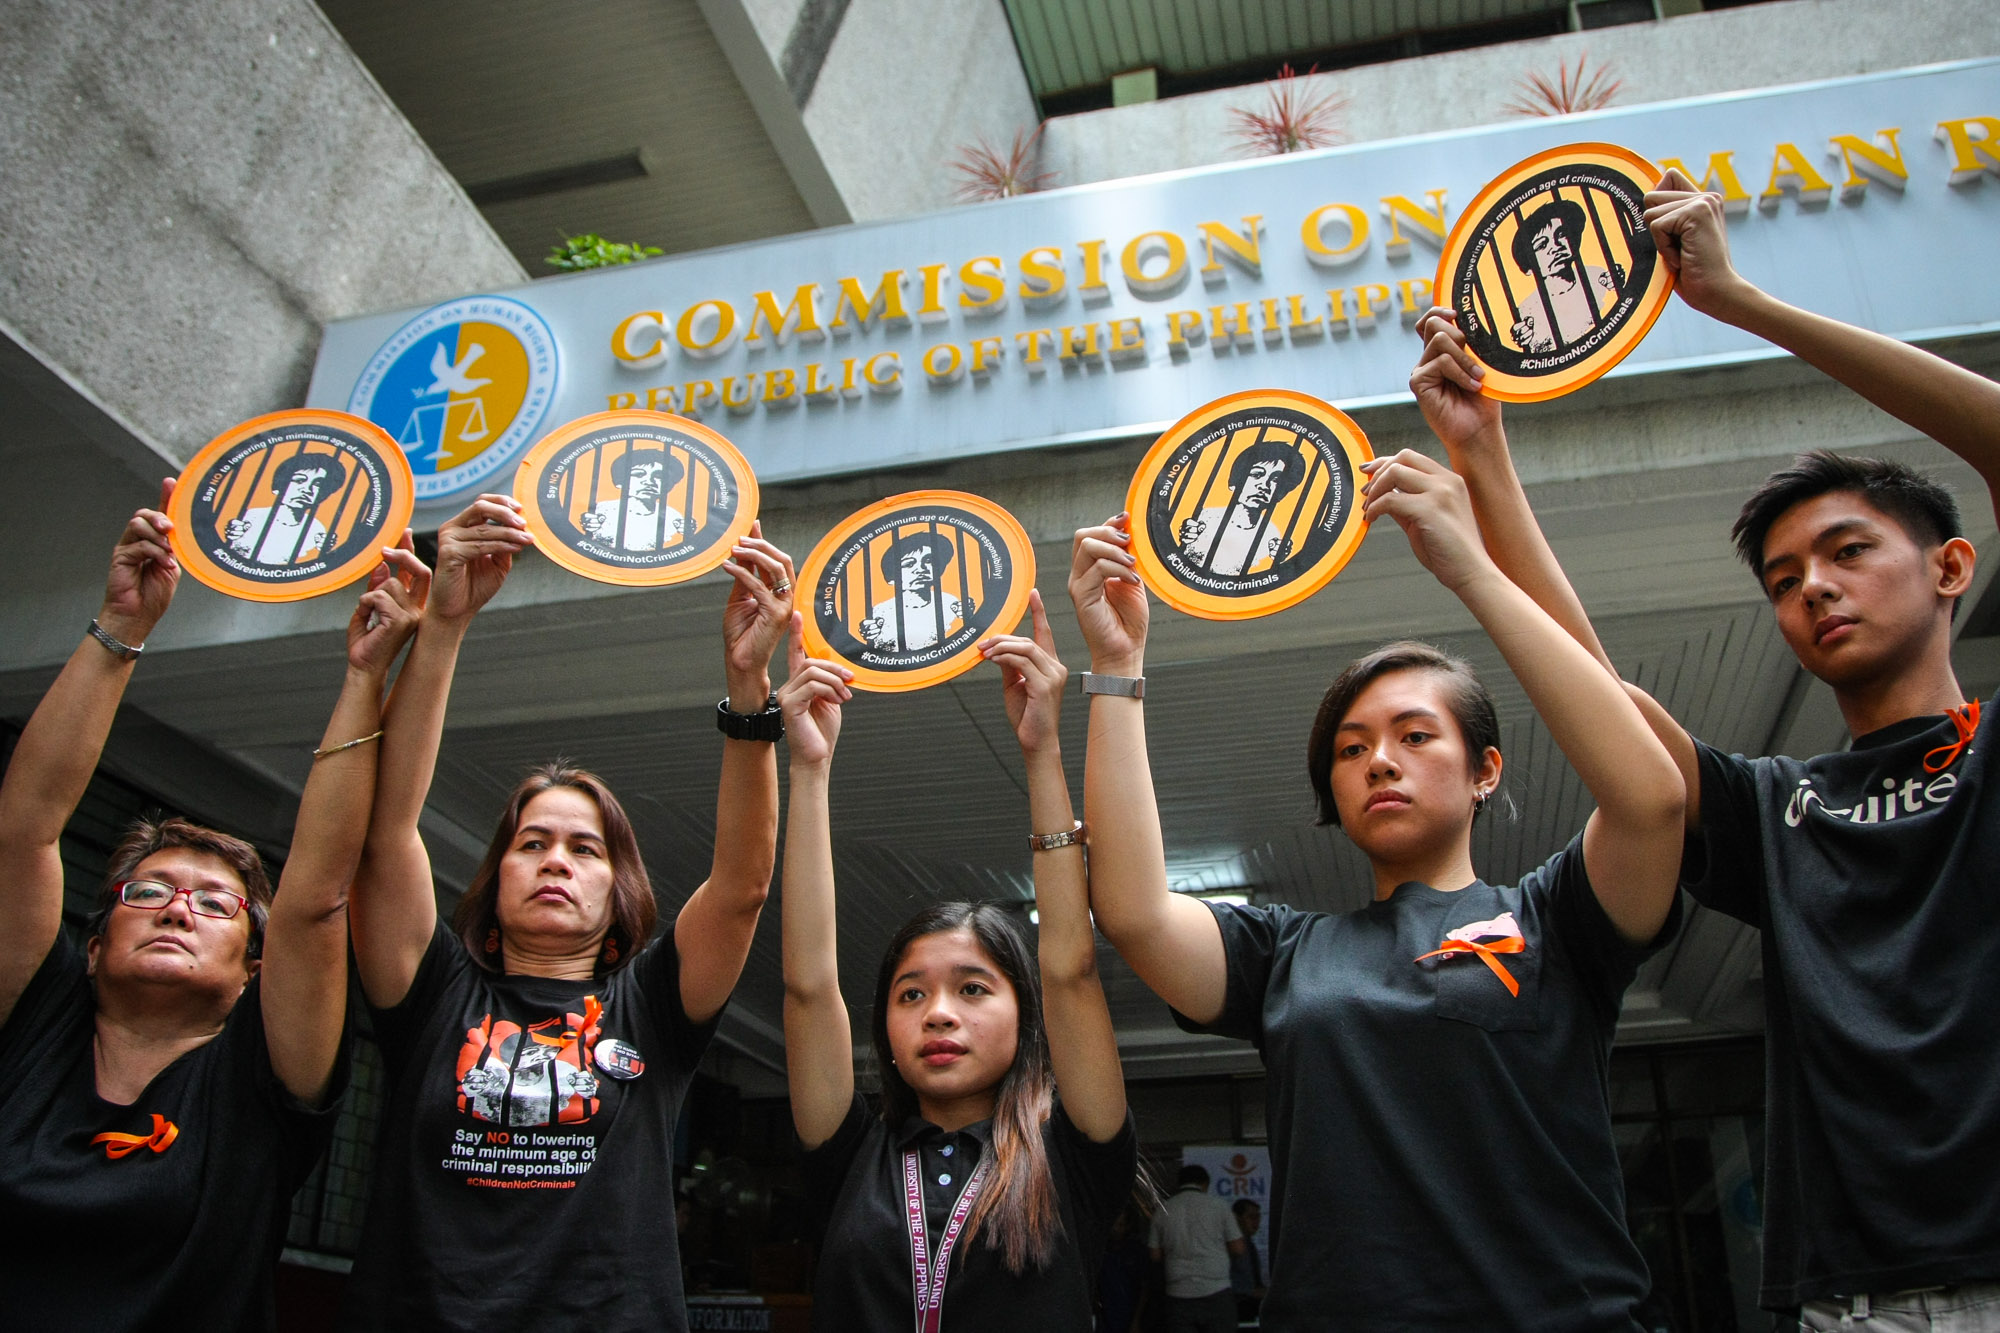 PROTEST. Child rights groups belonging to the Salinlahi Alliance for Children's Concerns oppose the lowering of the minimum criminal responsibility from 15 to 9 years old in a press conference at the CHR headquarters on January 22, 2019. Photo by Jire Carreon/Rappler